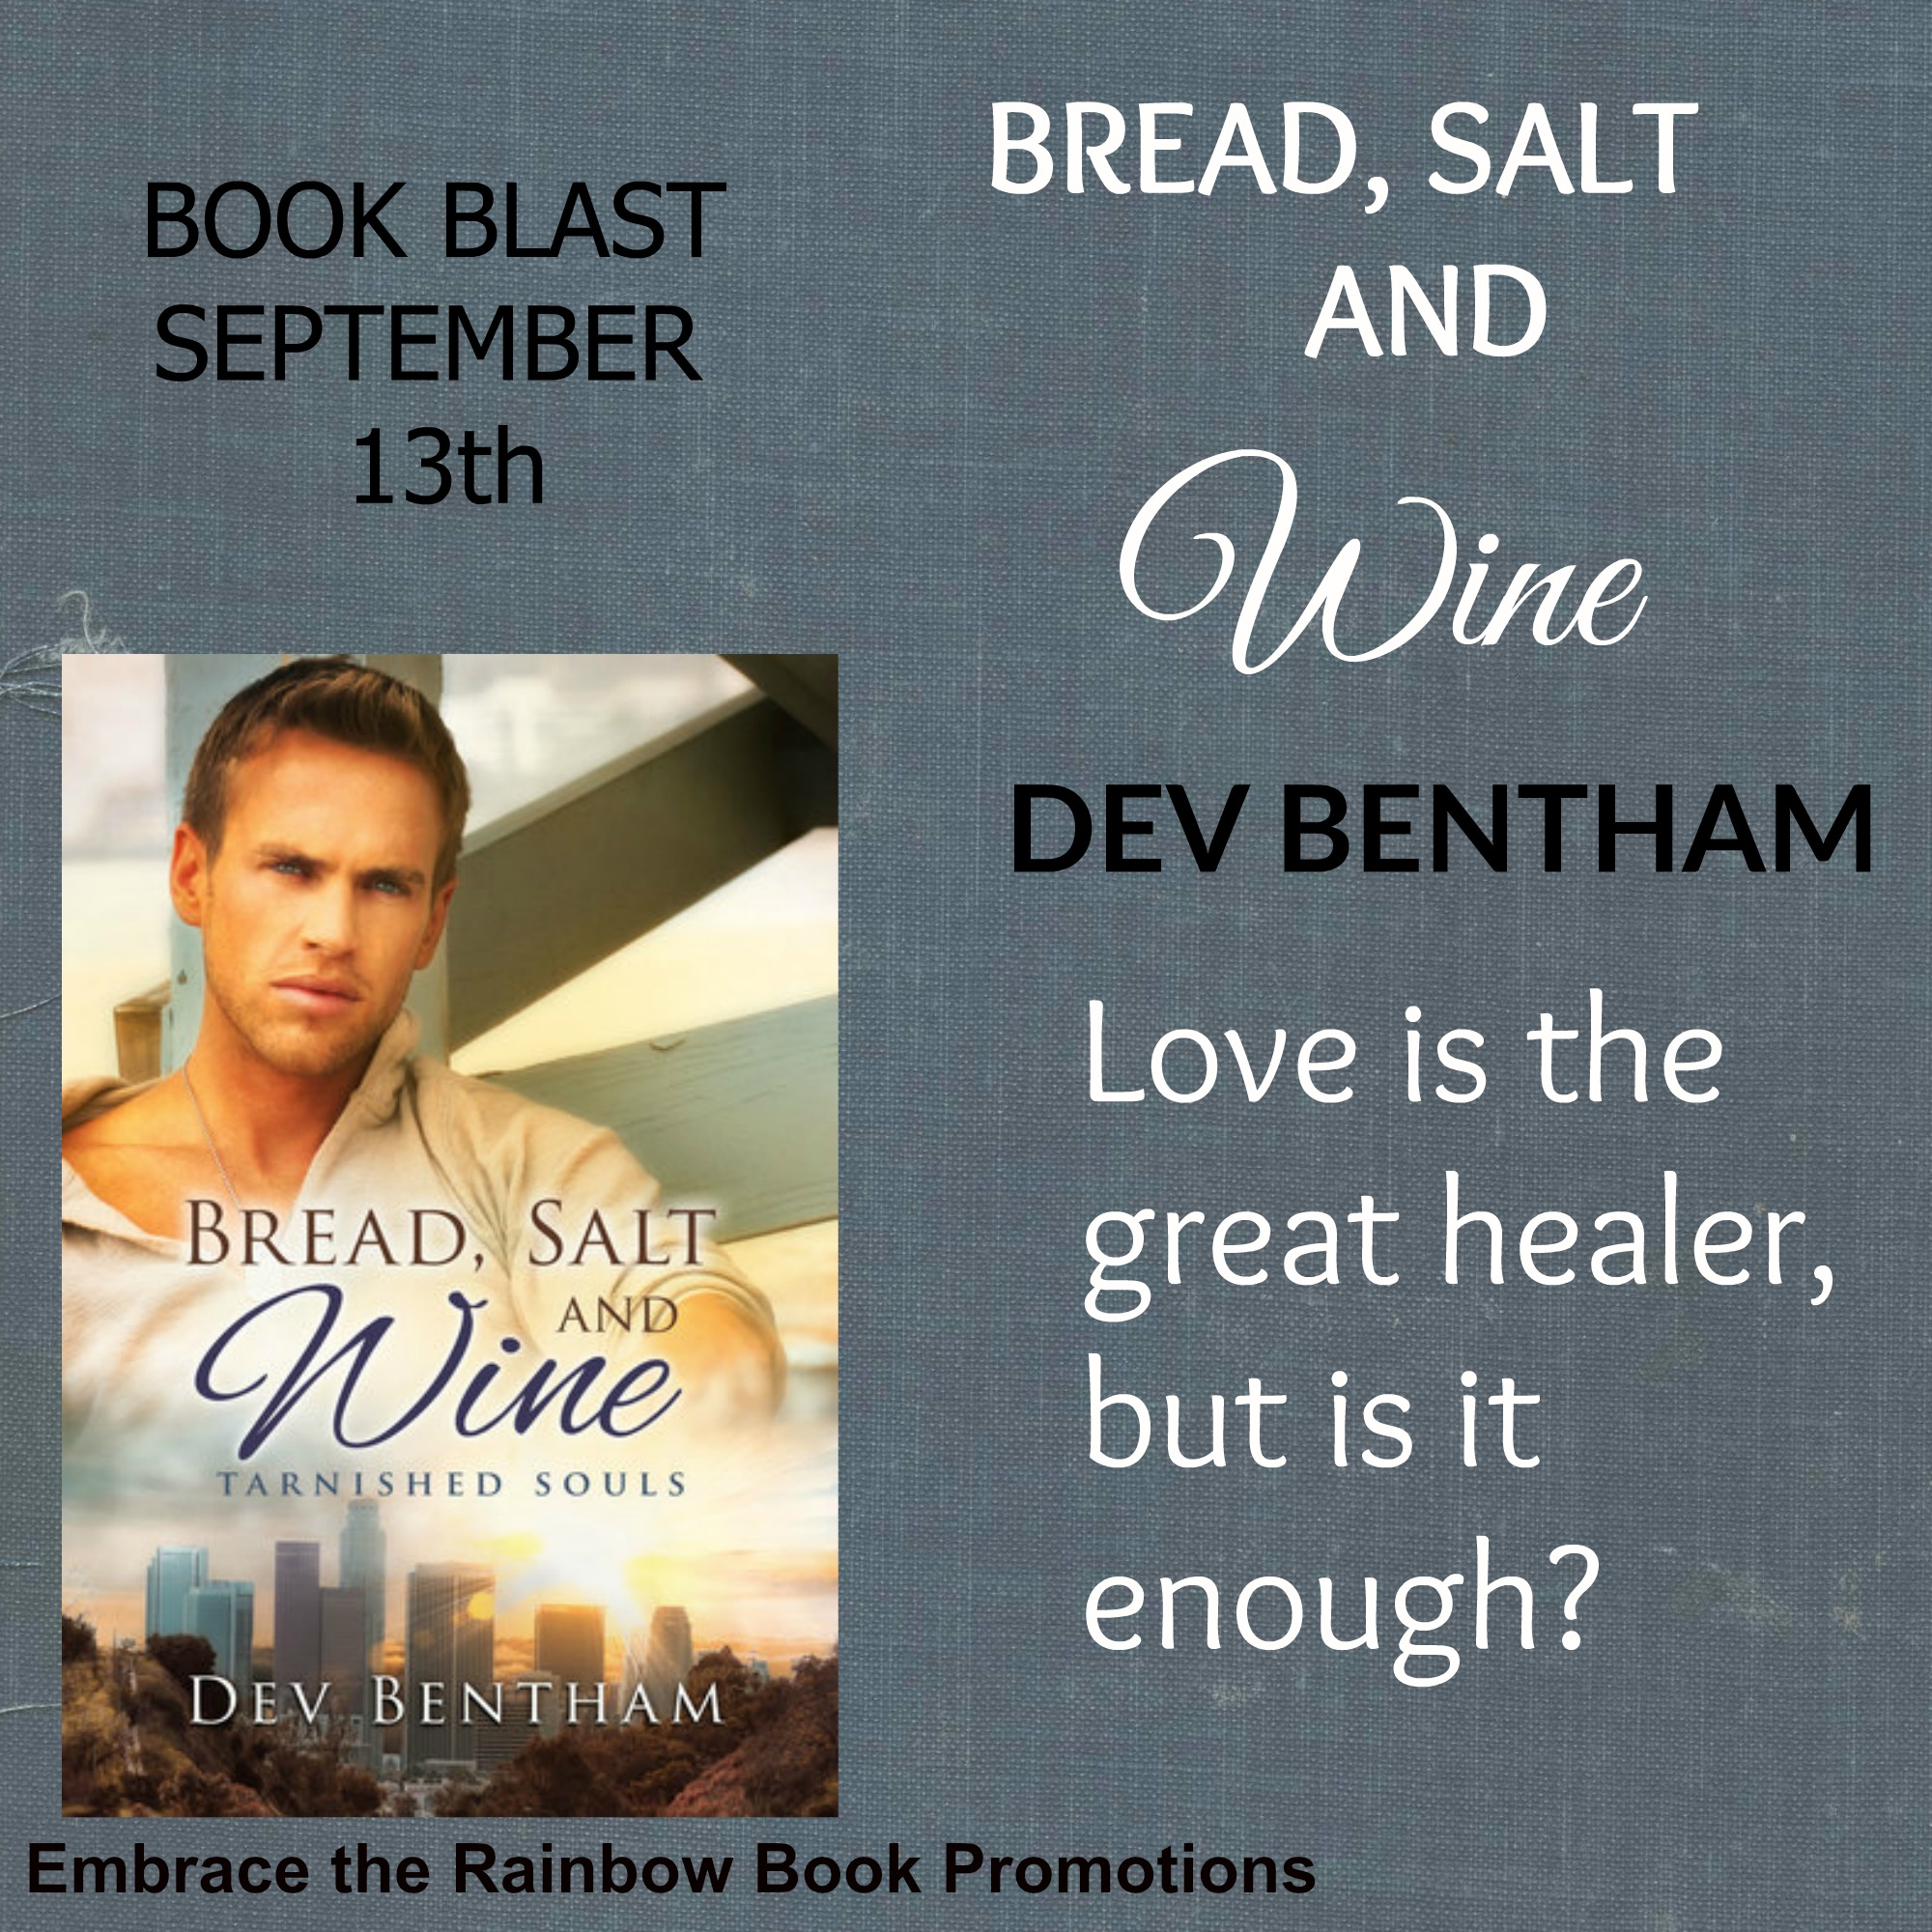 BLOG TOUR: Bread, Salt & Wine by Dev Bentham